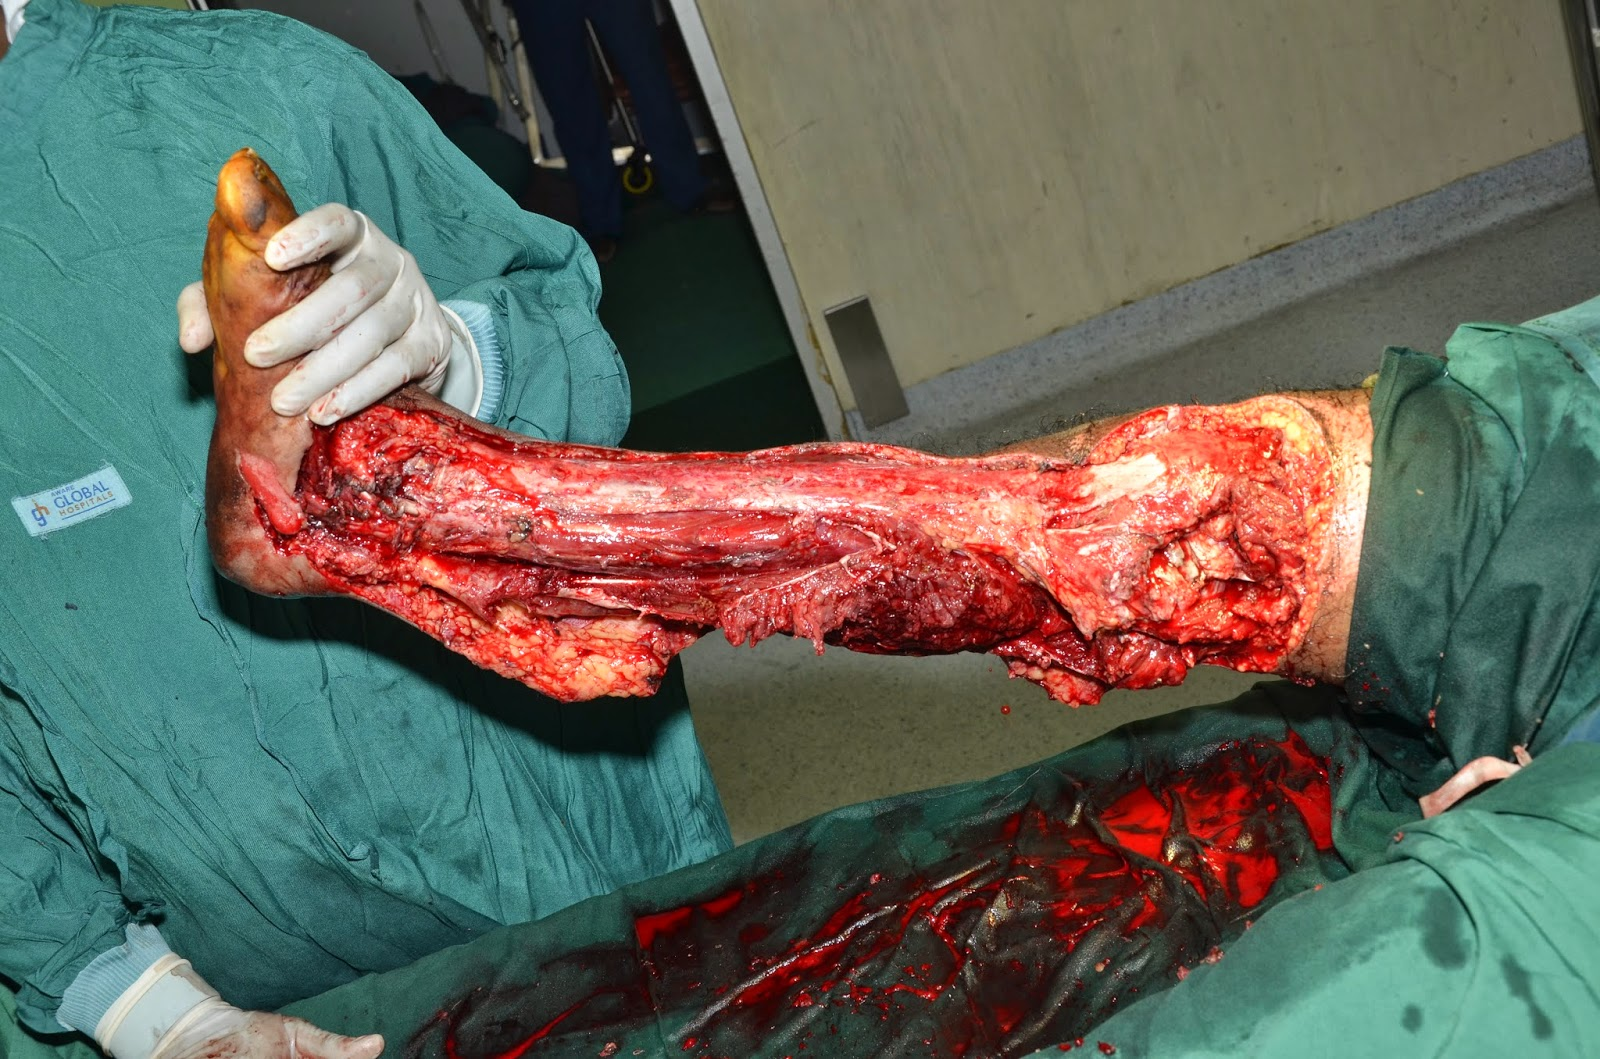 ... COVERAGE OF ANKLE - NEGATIVE PRESSURE WOUND THERAPY - SKIN GRAFTING